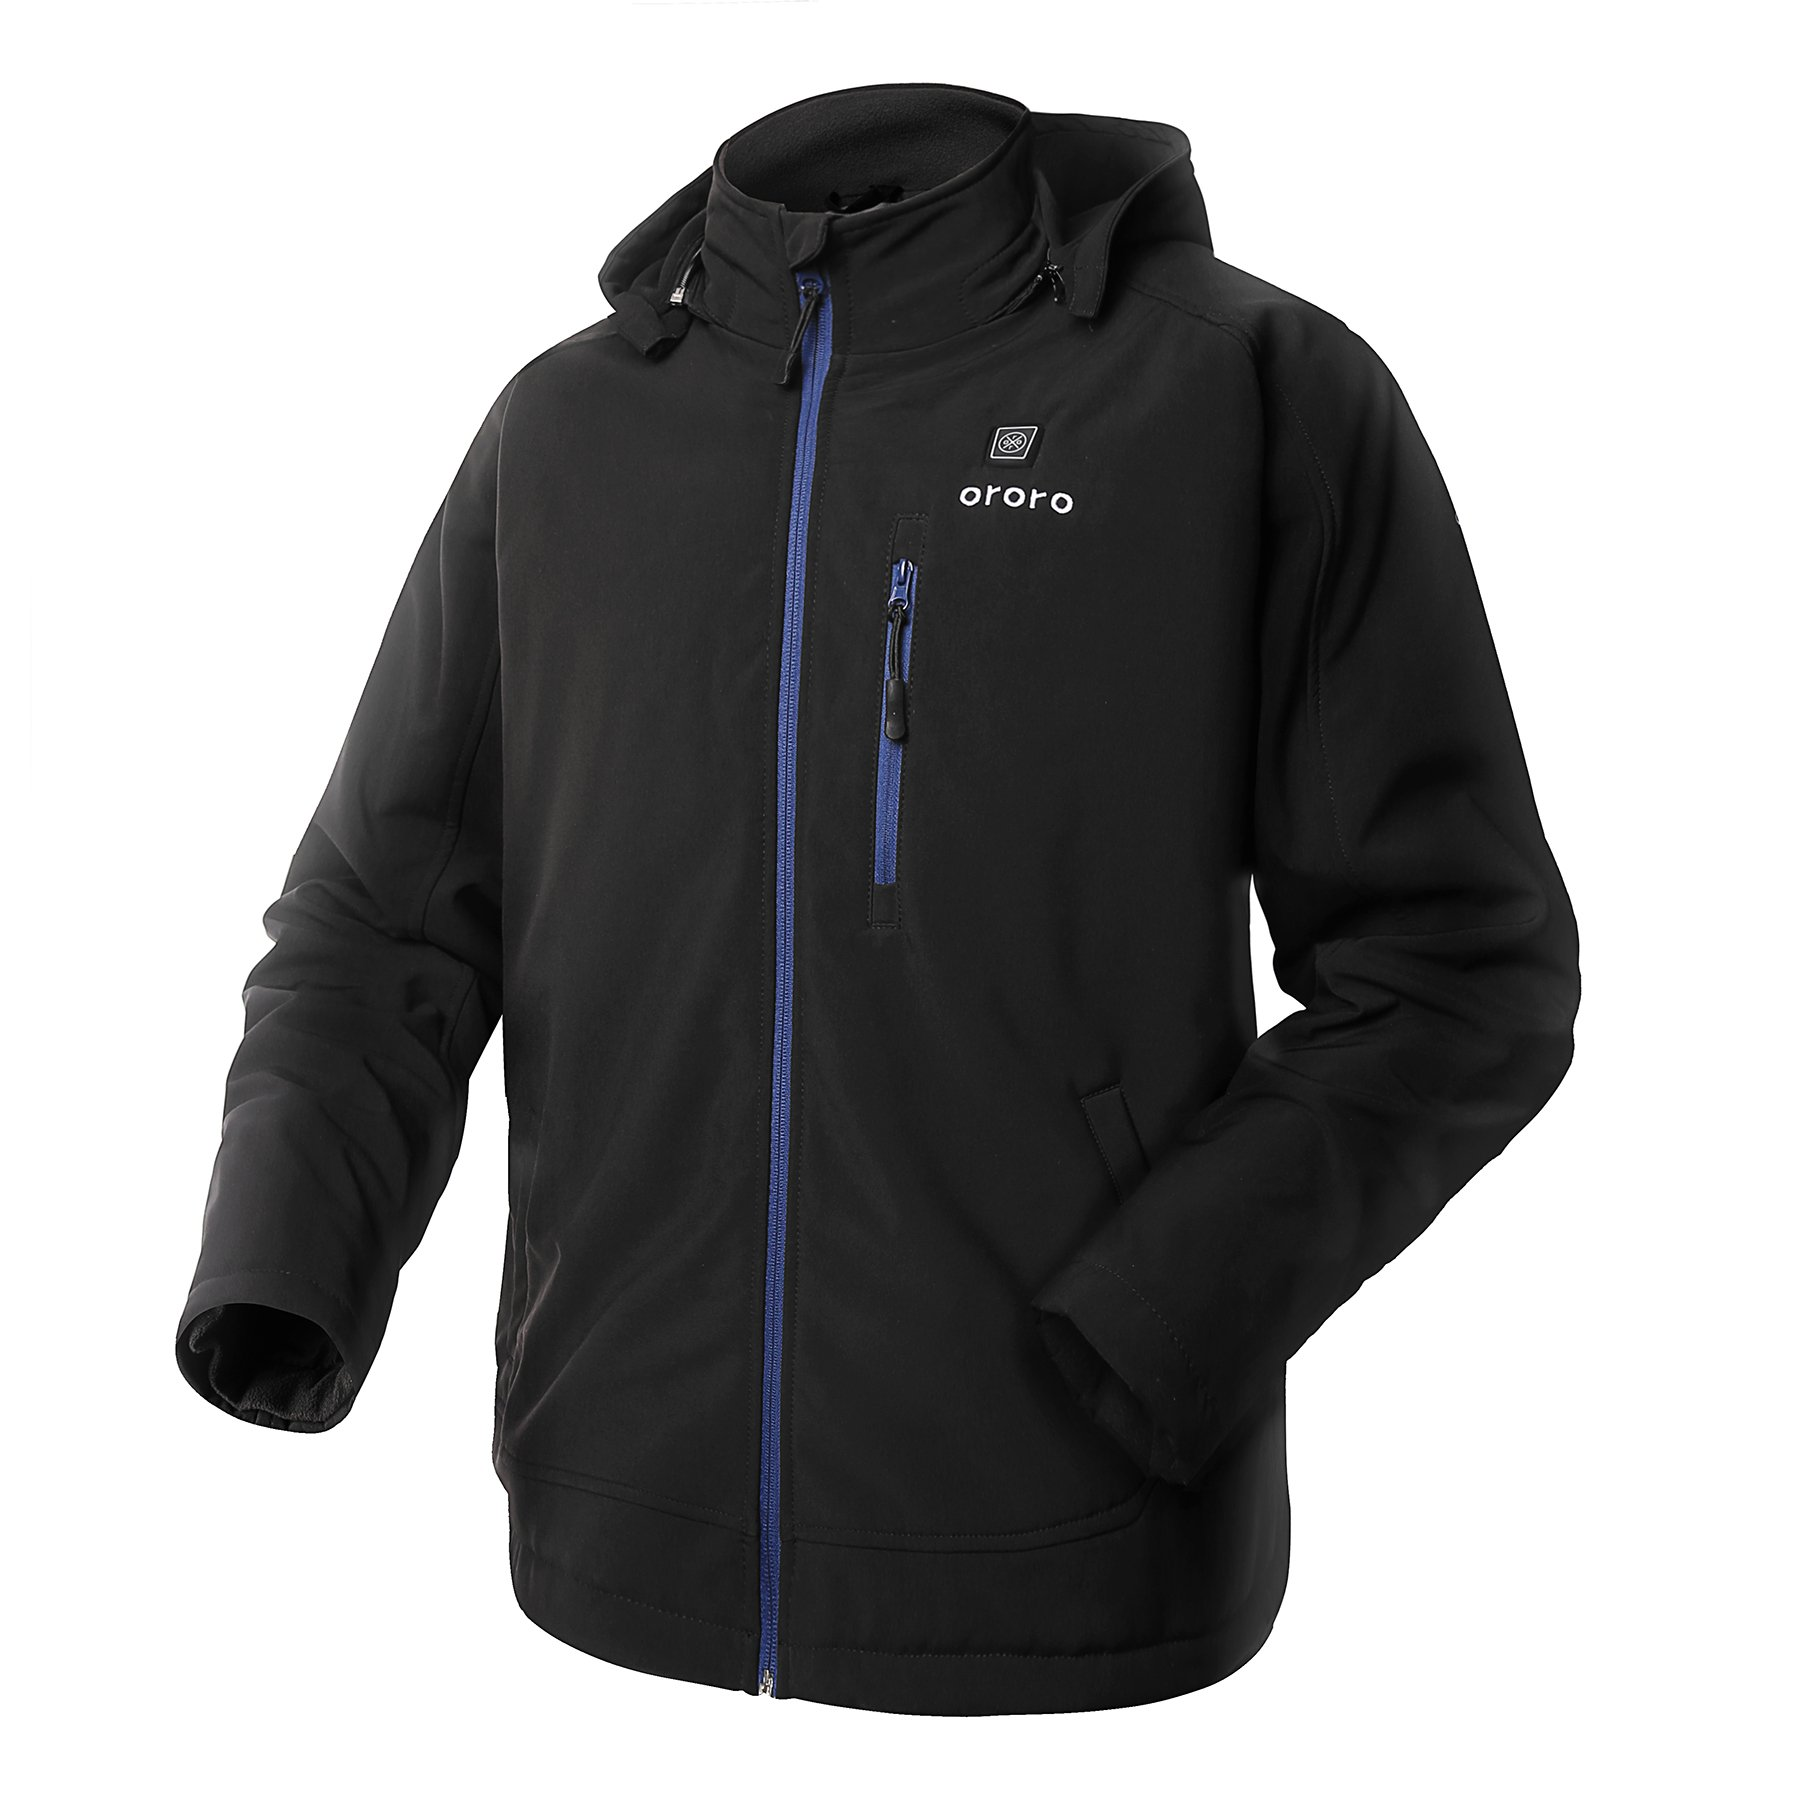 ororo Men's Soft Shell Heated Jacket Kit With Detachable Hood and Battery Pack